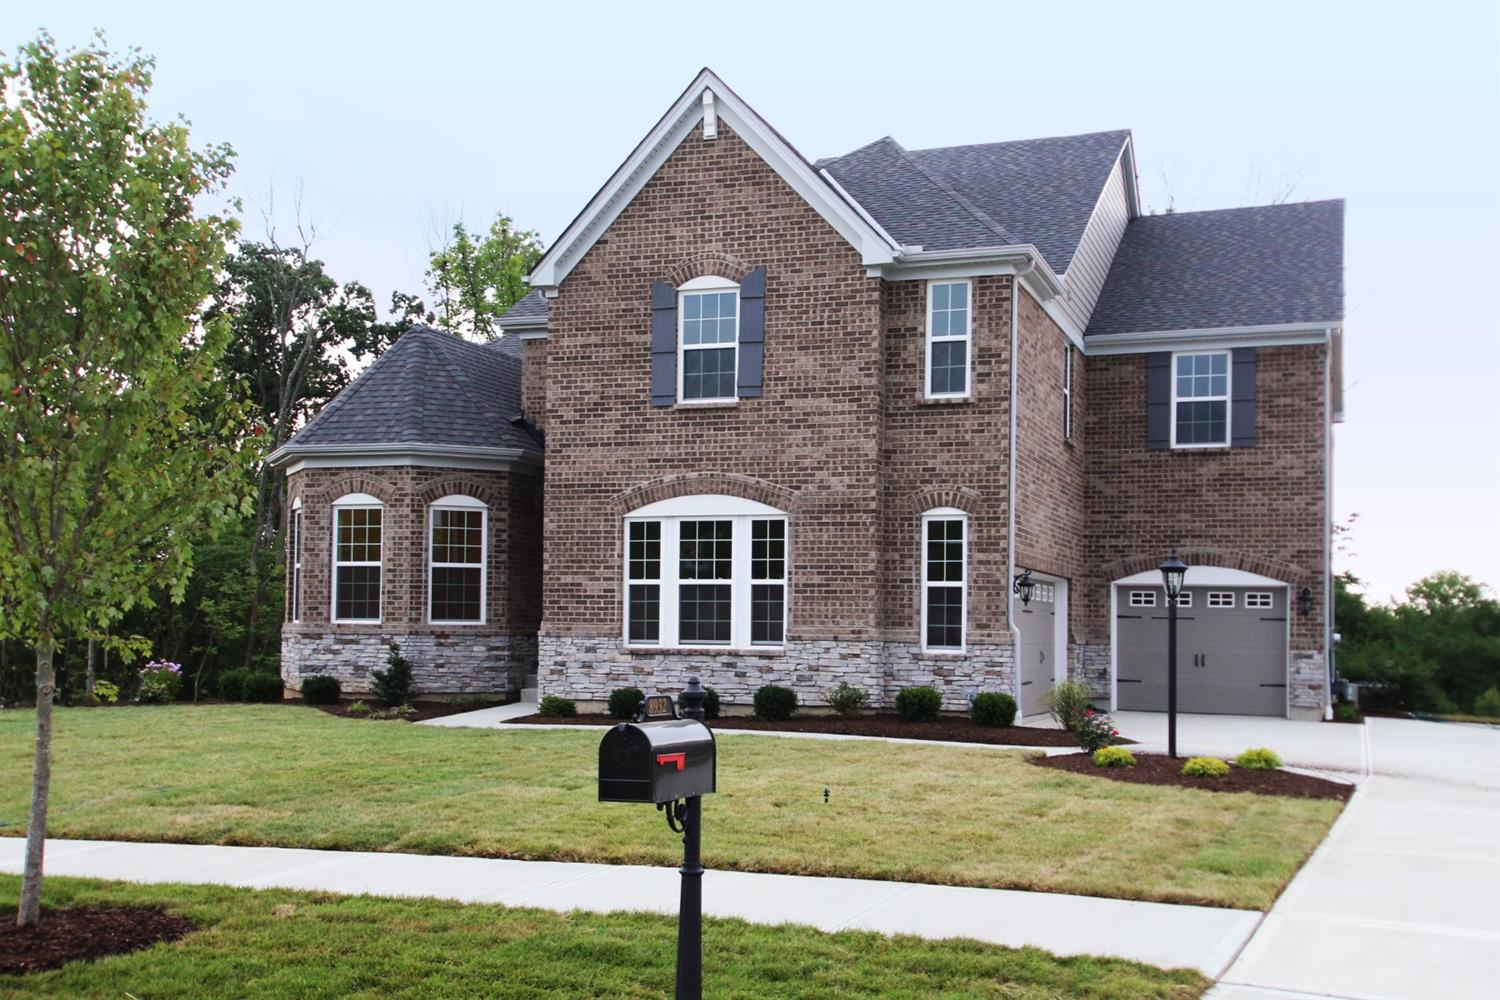 8932 Oakcrest Wy West Chester - East, OH